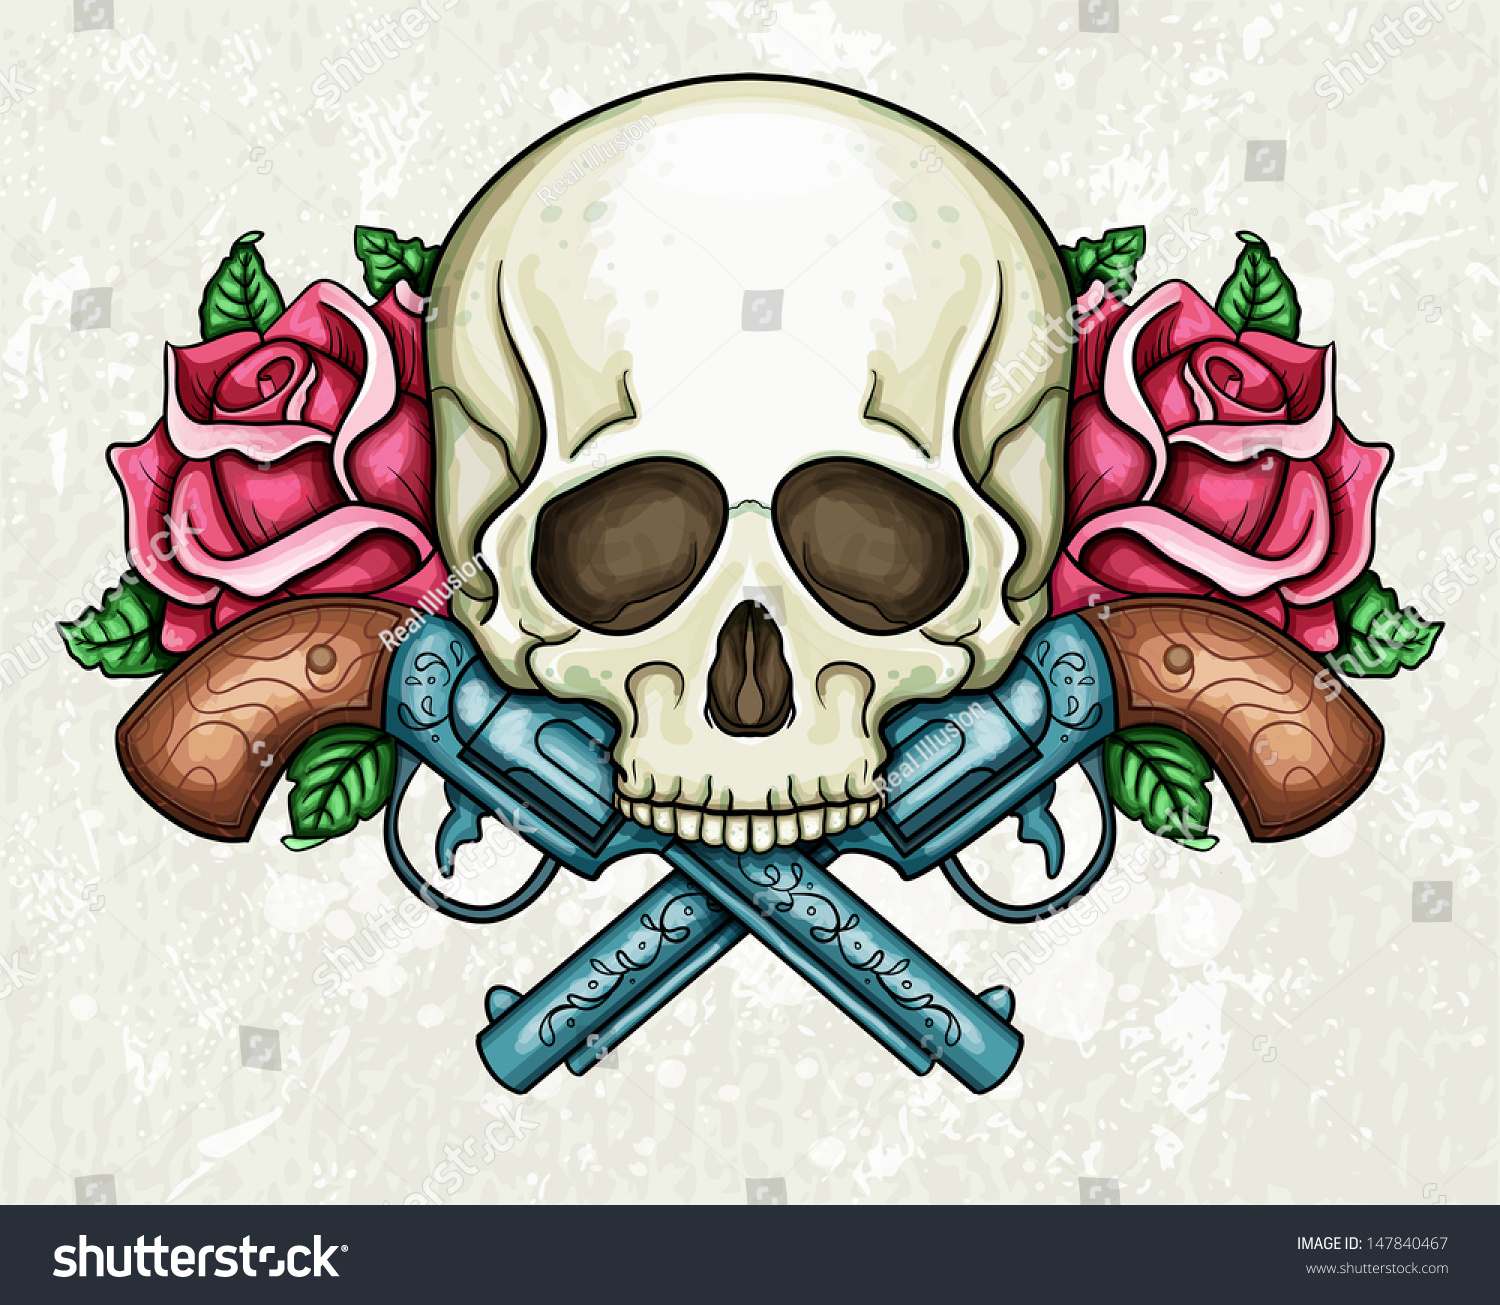 Skull Crossed Guns Roses Stock Vector 147840467 Shutterstock